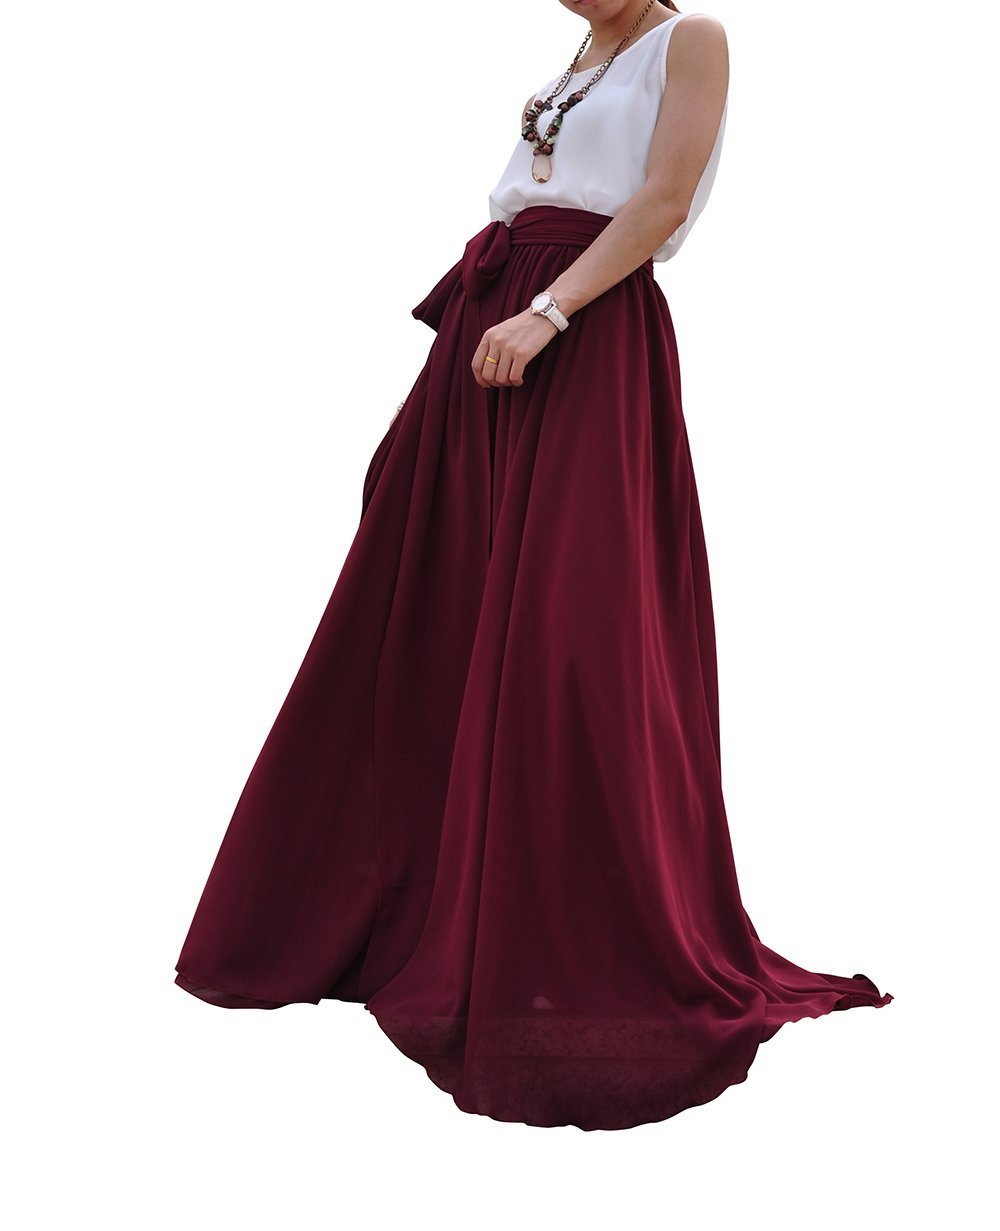 Melansay Women's Beatiful Bow Tie Summer Beach Chiffon High Waist Maxi Skirt XL,Dark Red